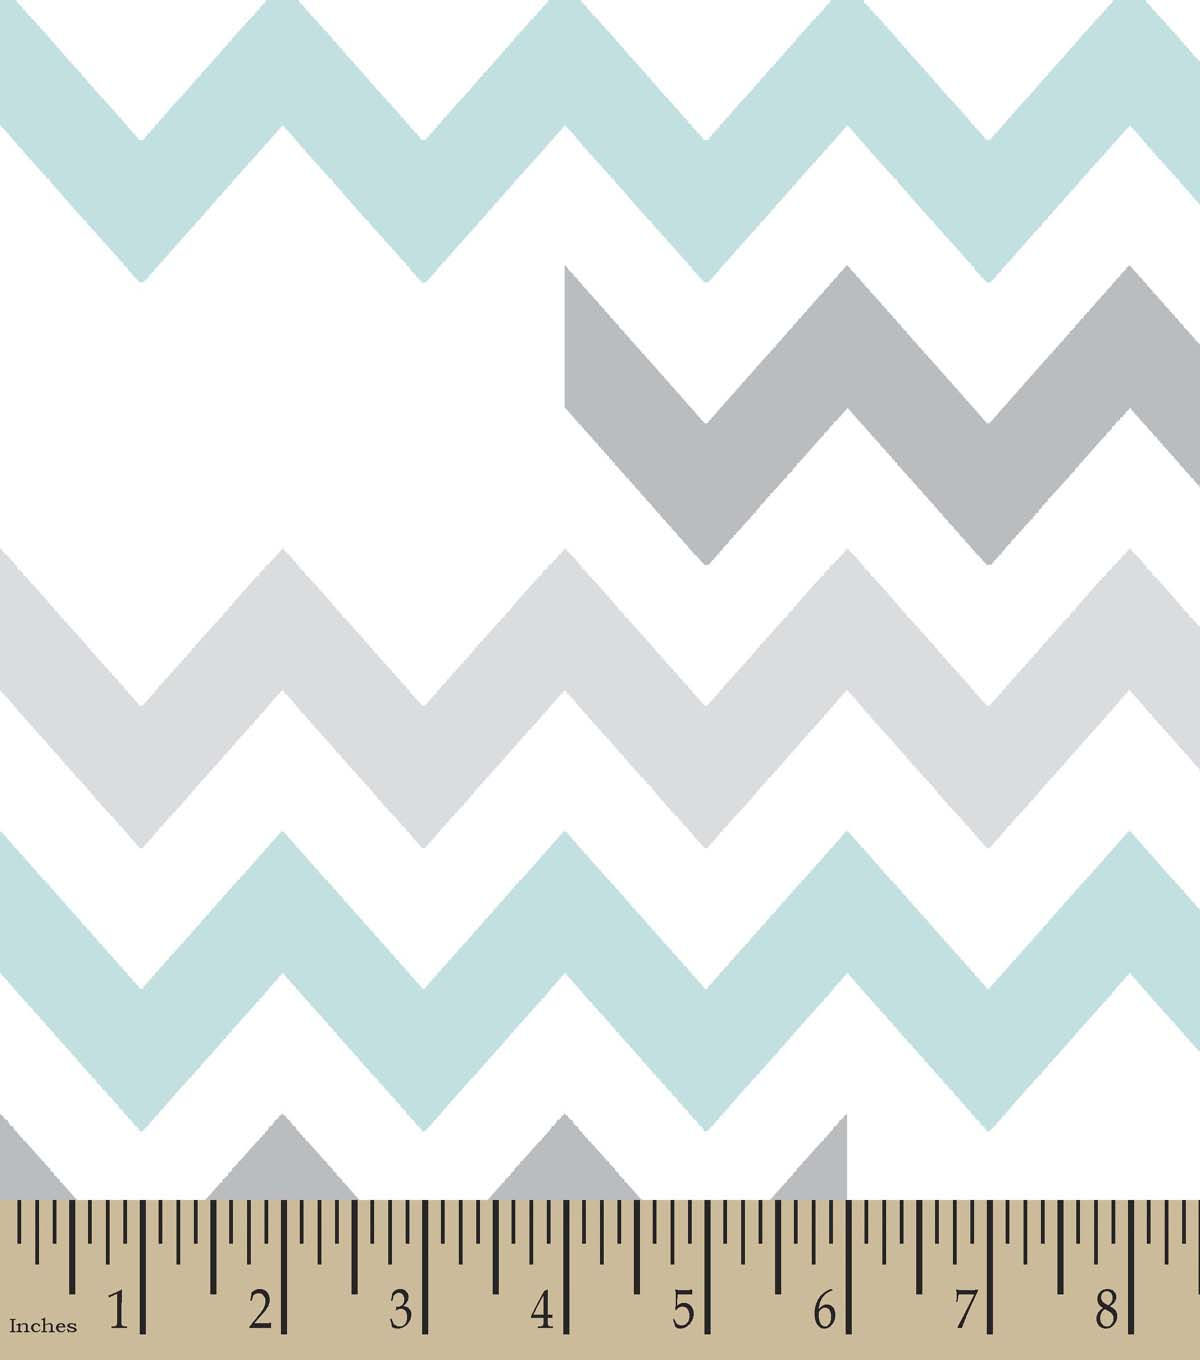 Grey & Teal Chevron Print Fabric